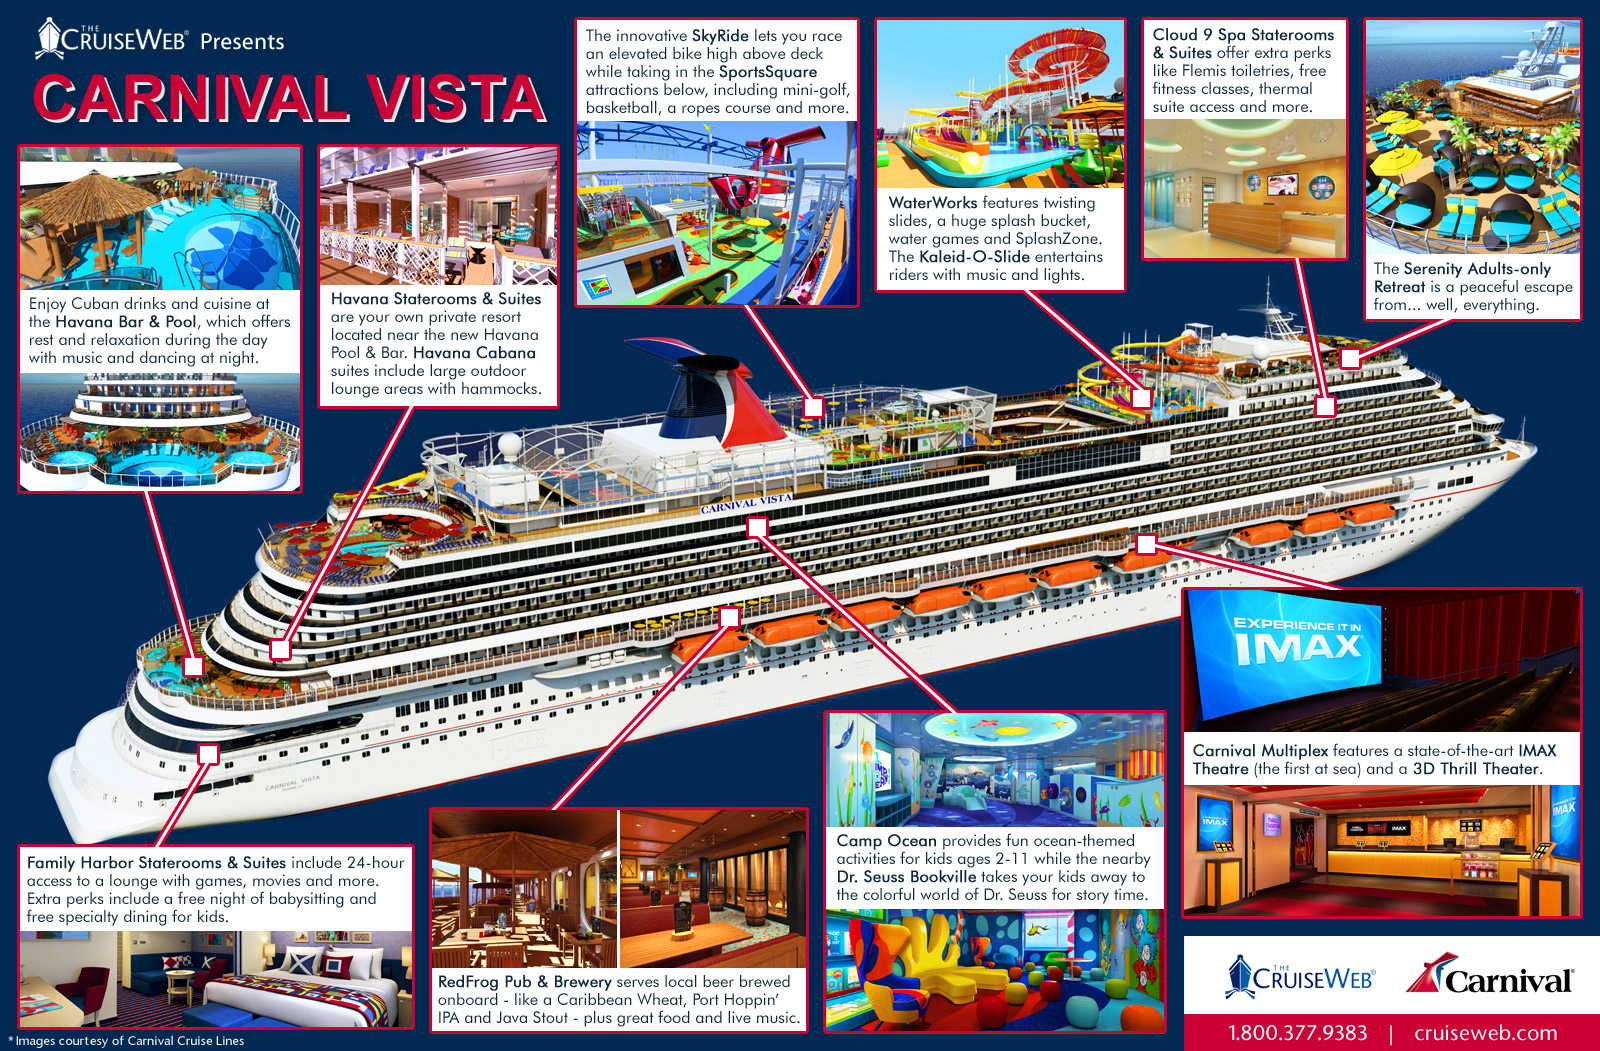 Inside the Carnival Vista: An Infographic